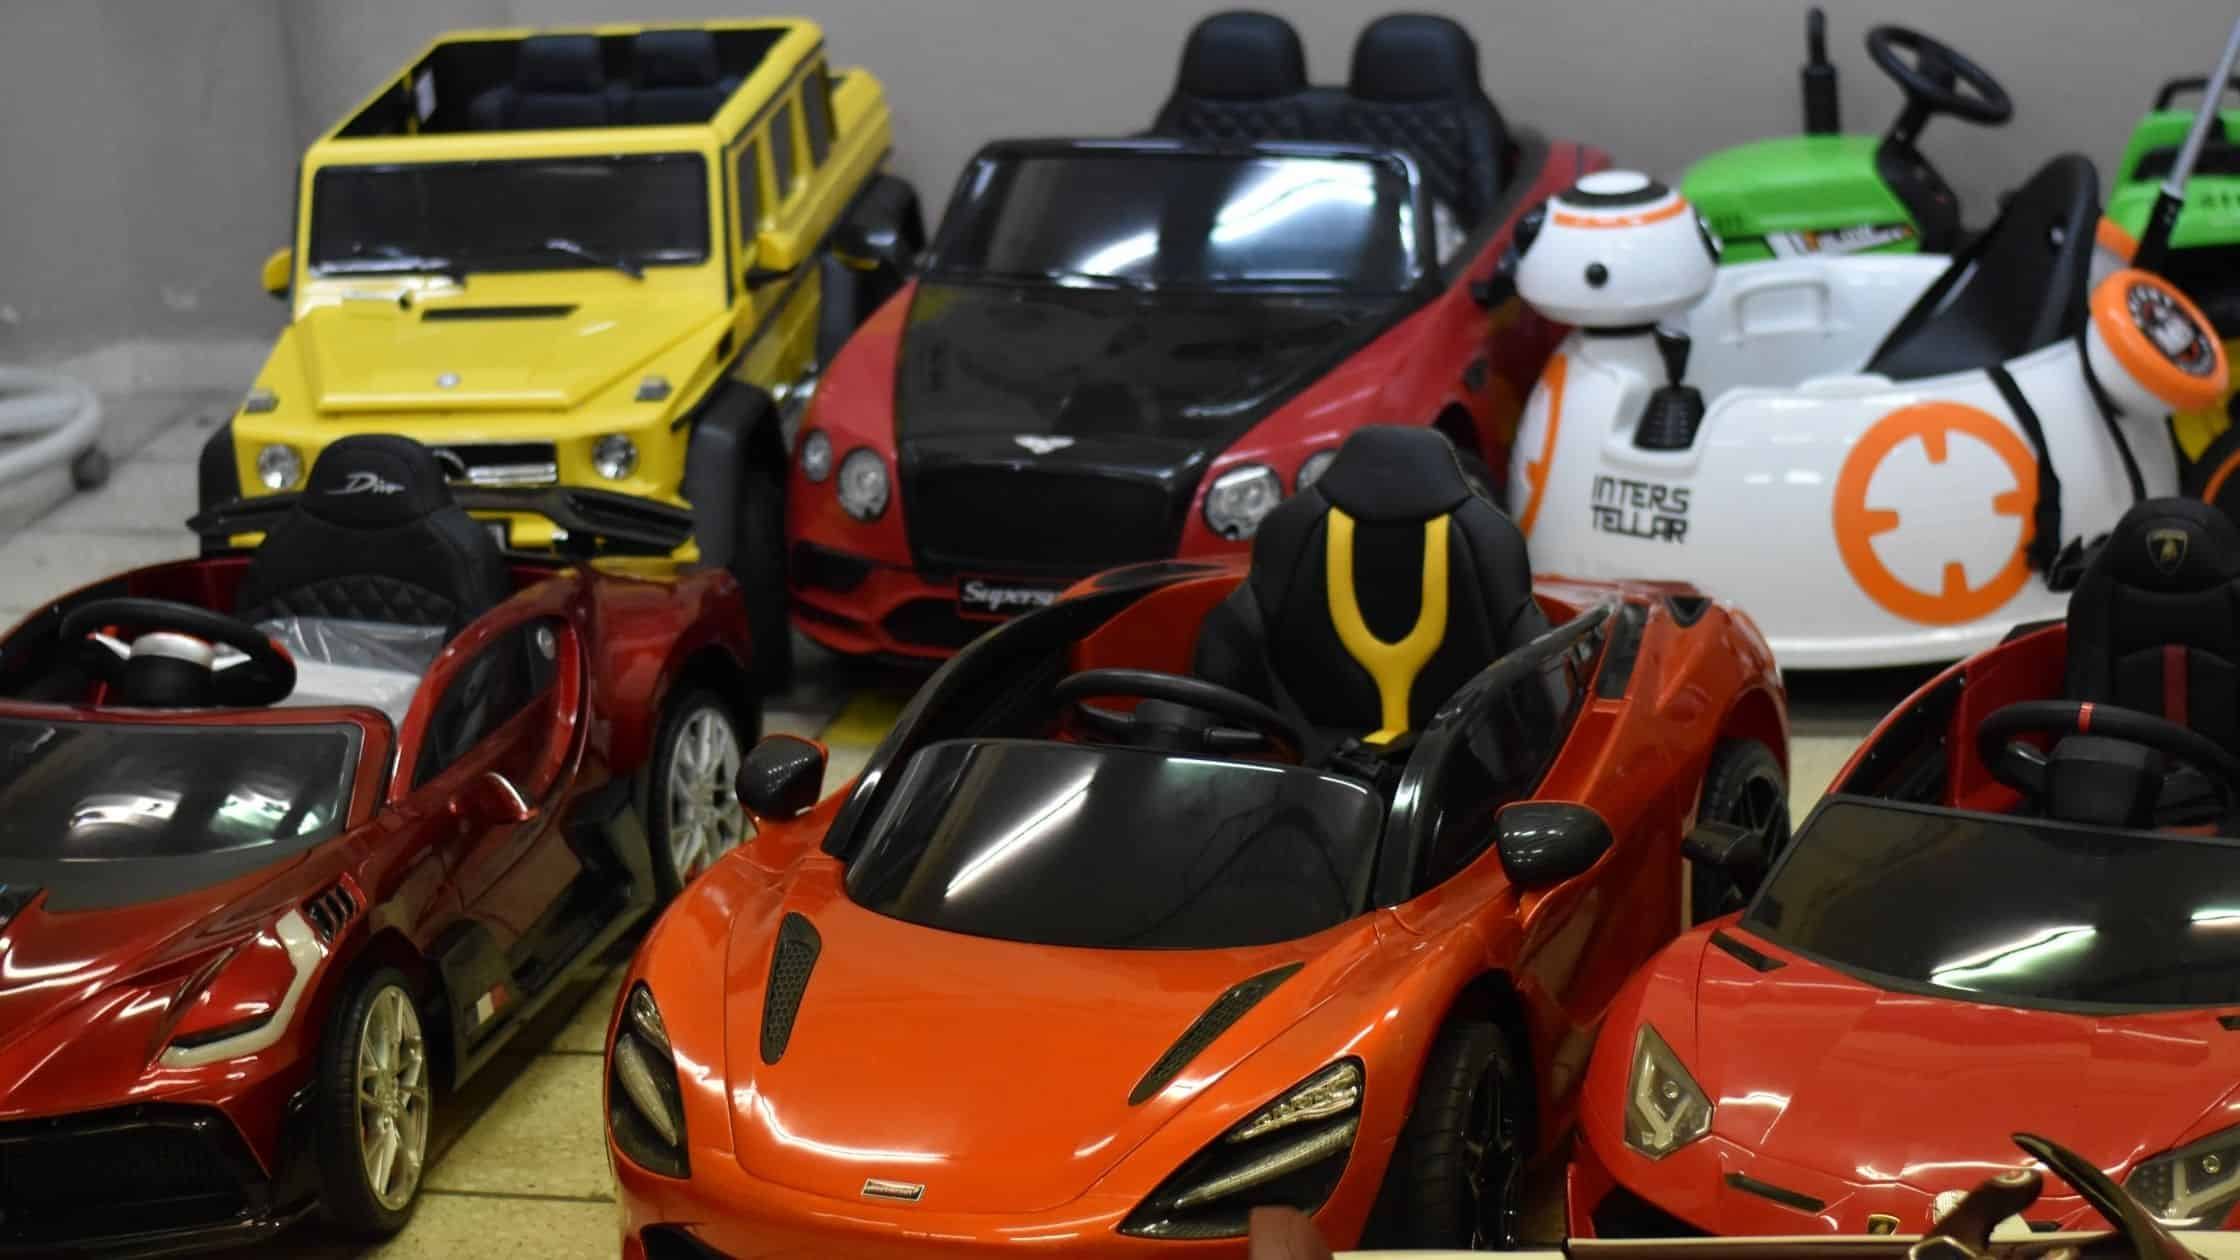 Different Types of Ride-on Cars